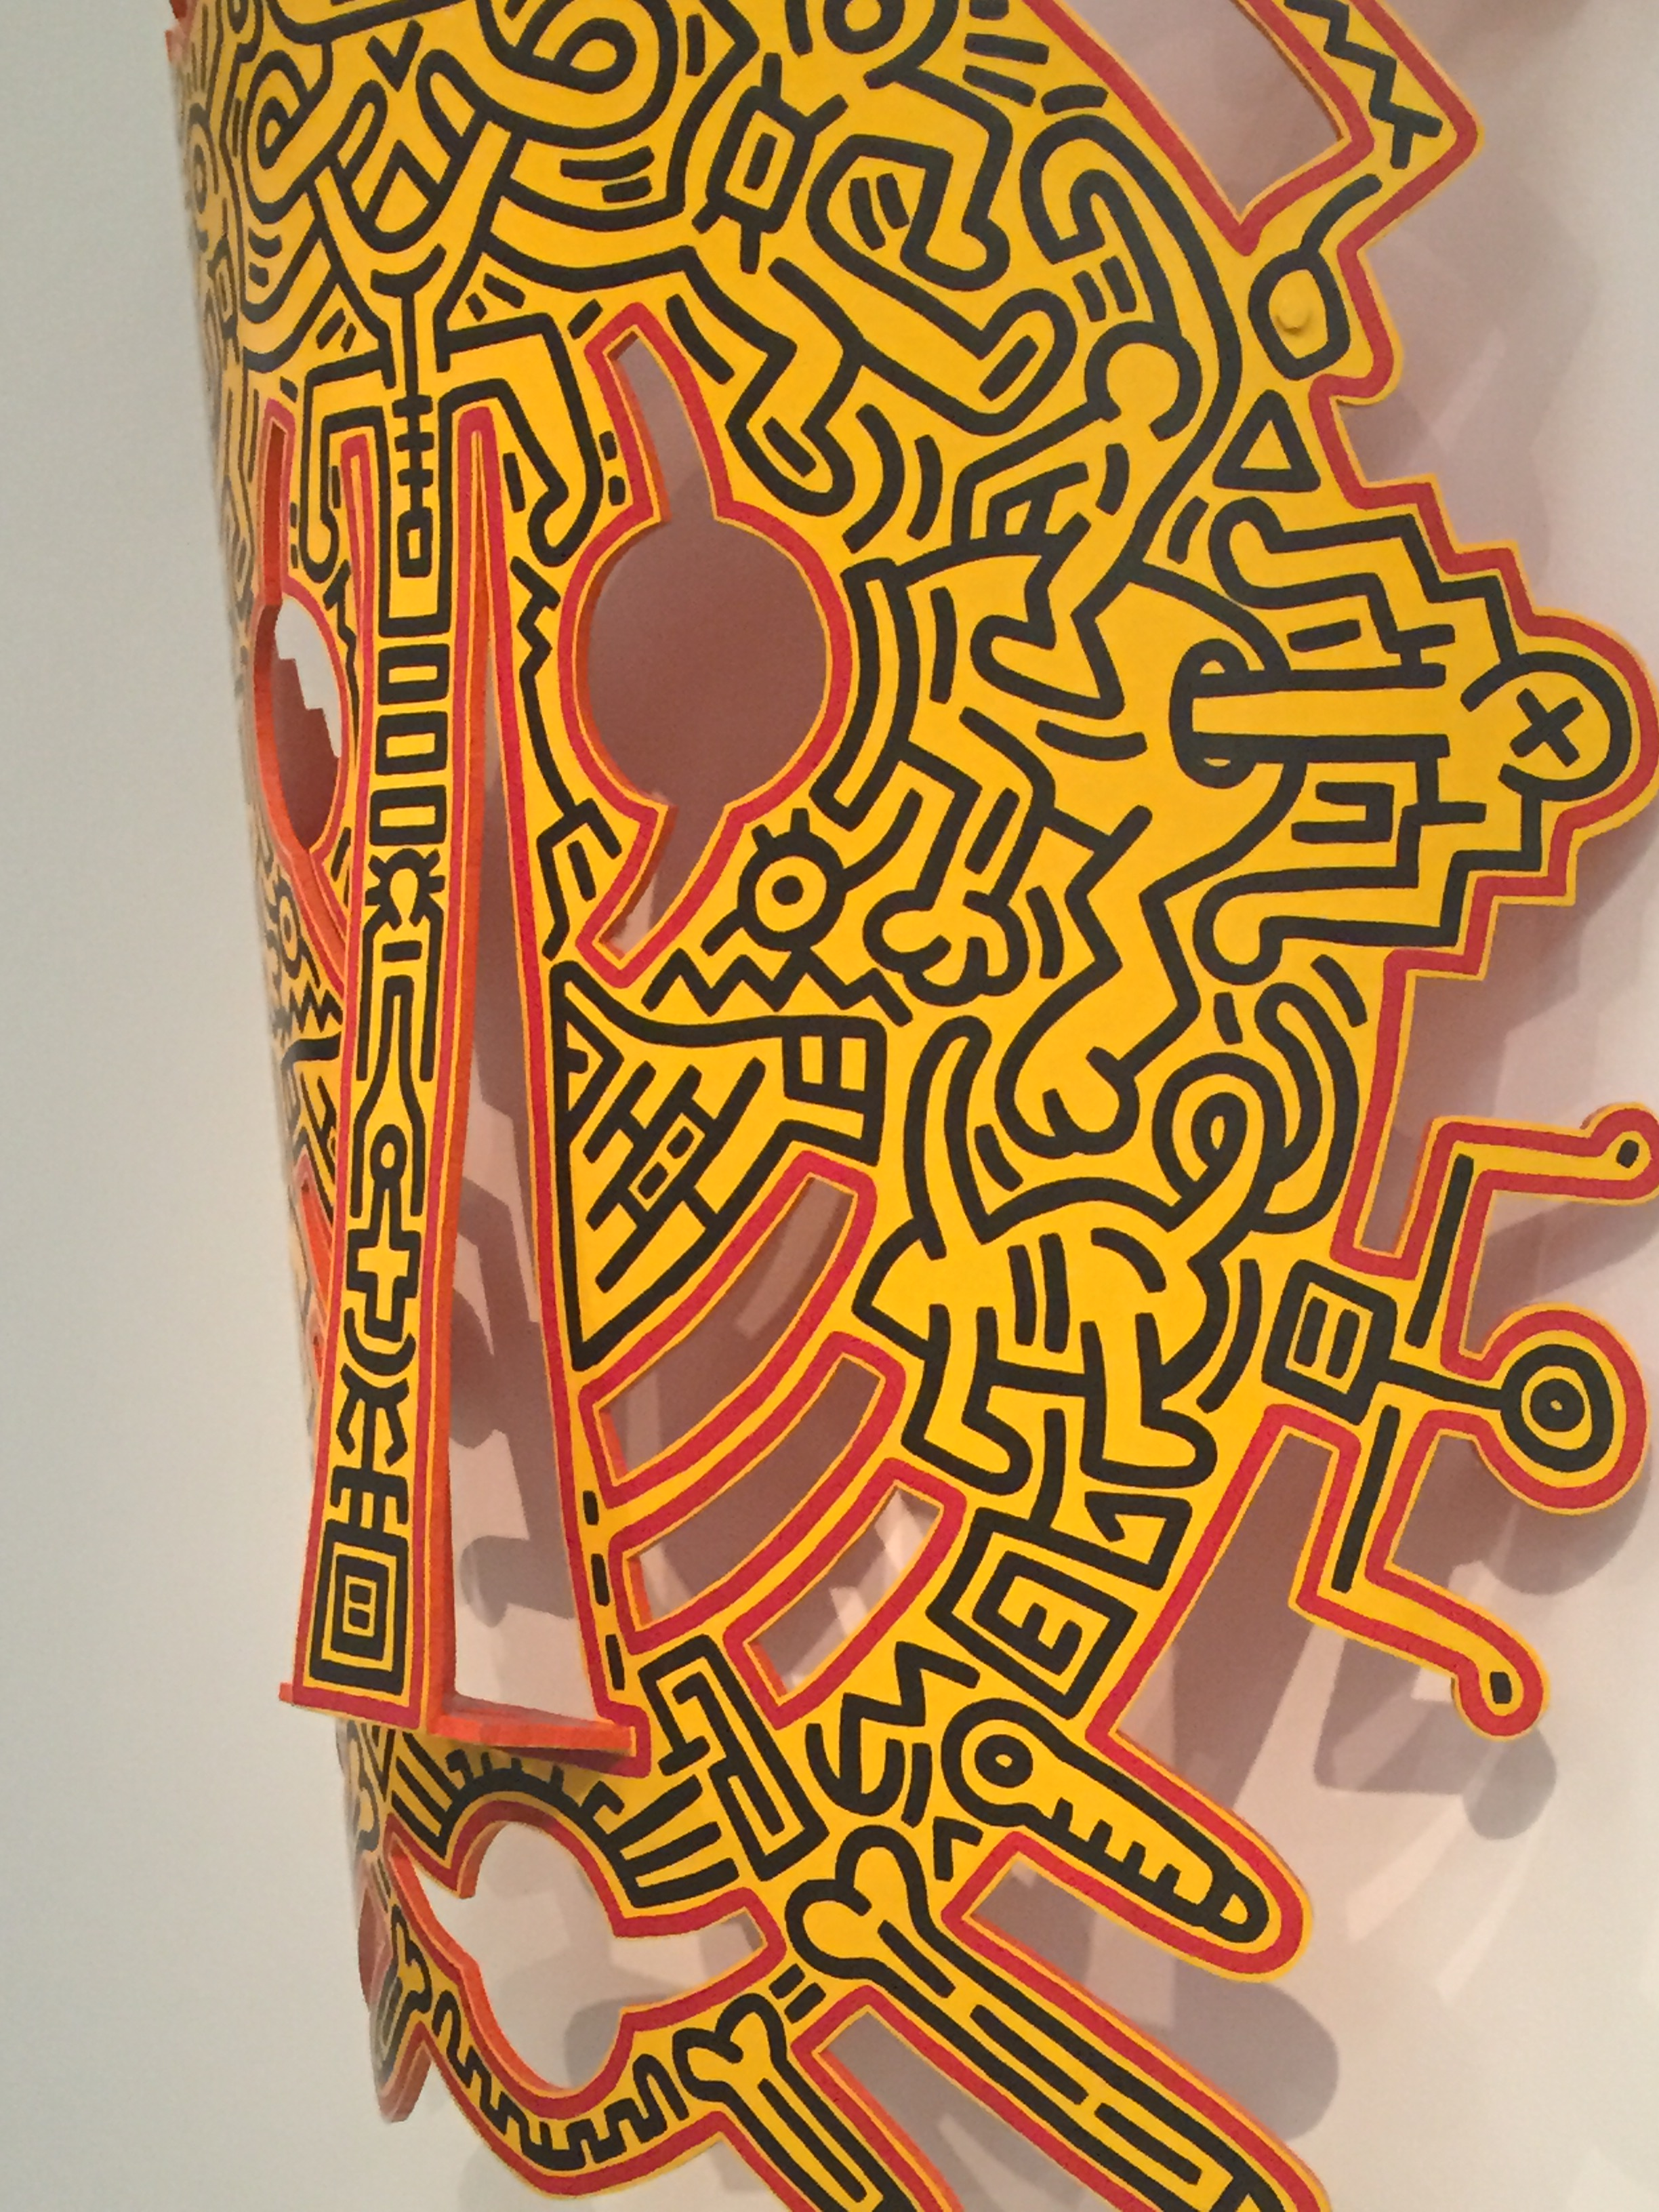 """Munich; KEITH HARING """"The political line"""" at KUNSTHALLE MUNCHEN 